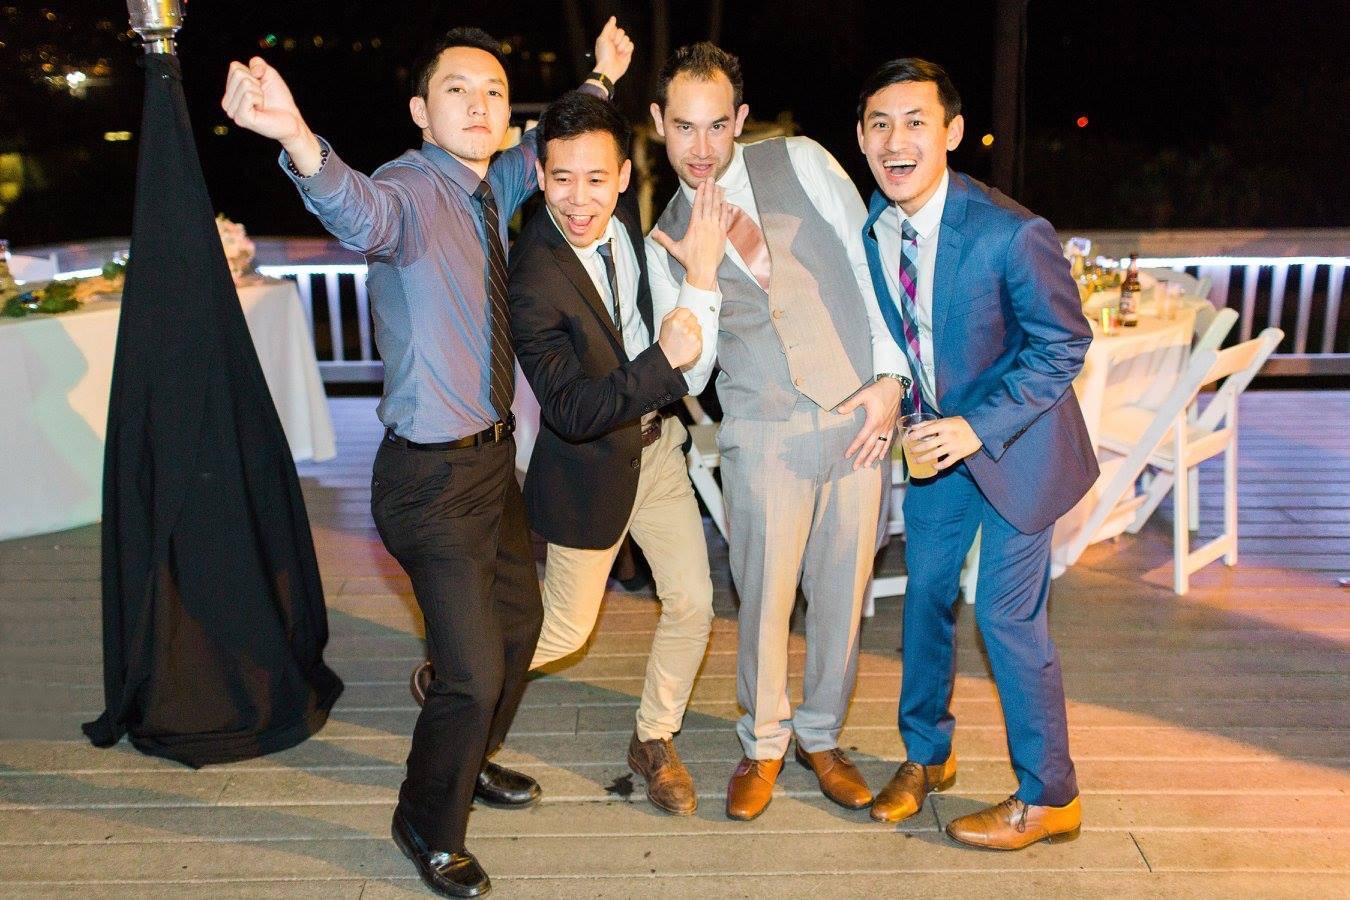 Alex and his groomsmen—Jason, Kevin and Patrick—partied it up at Kevin and Caroline's wedding!